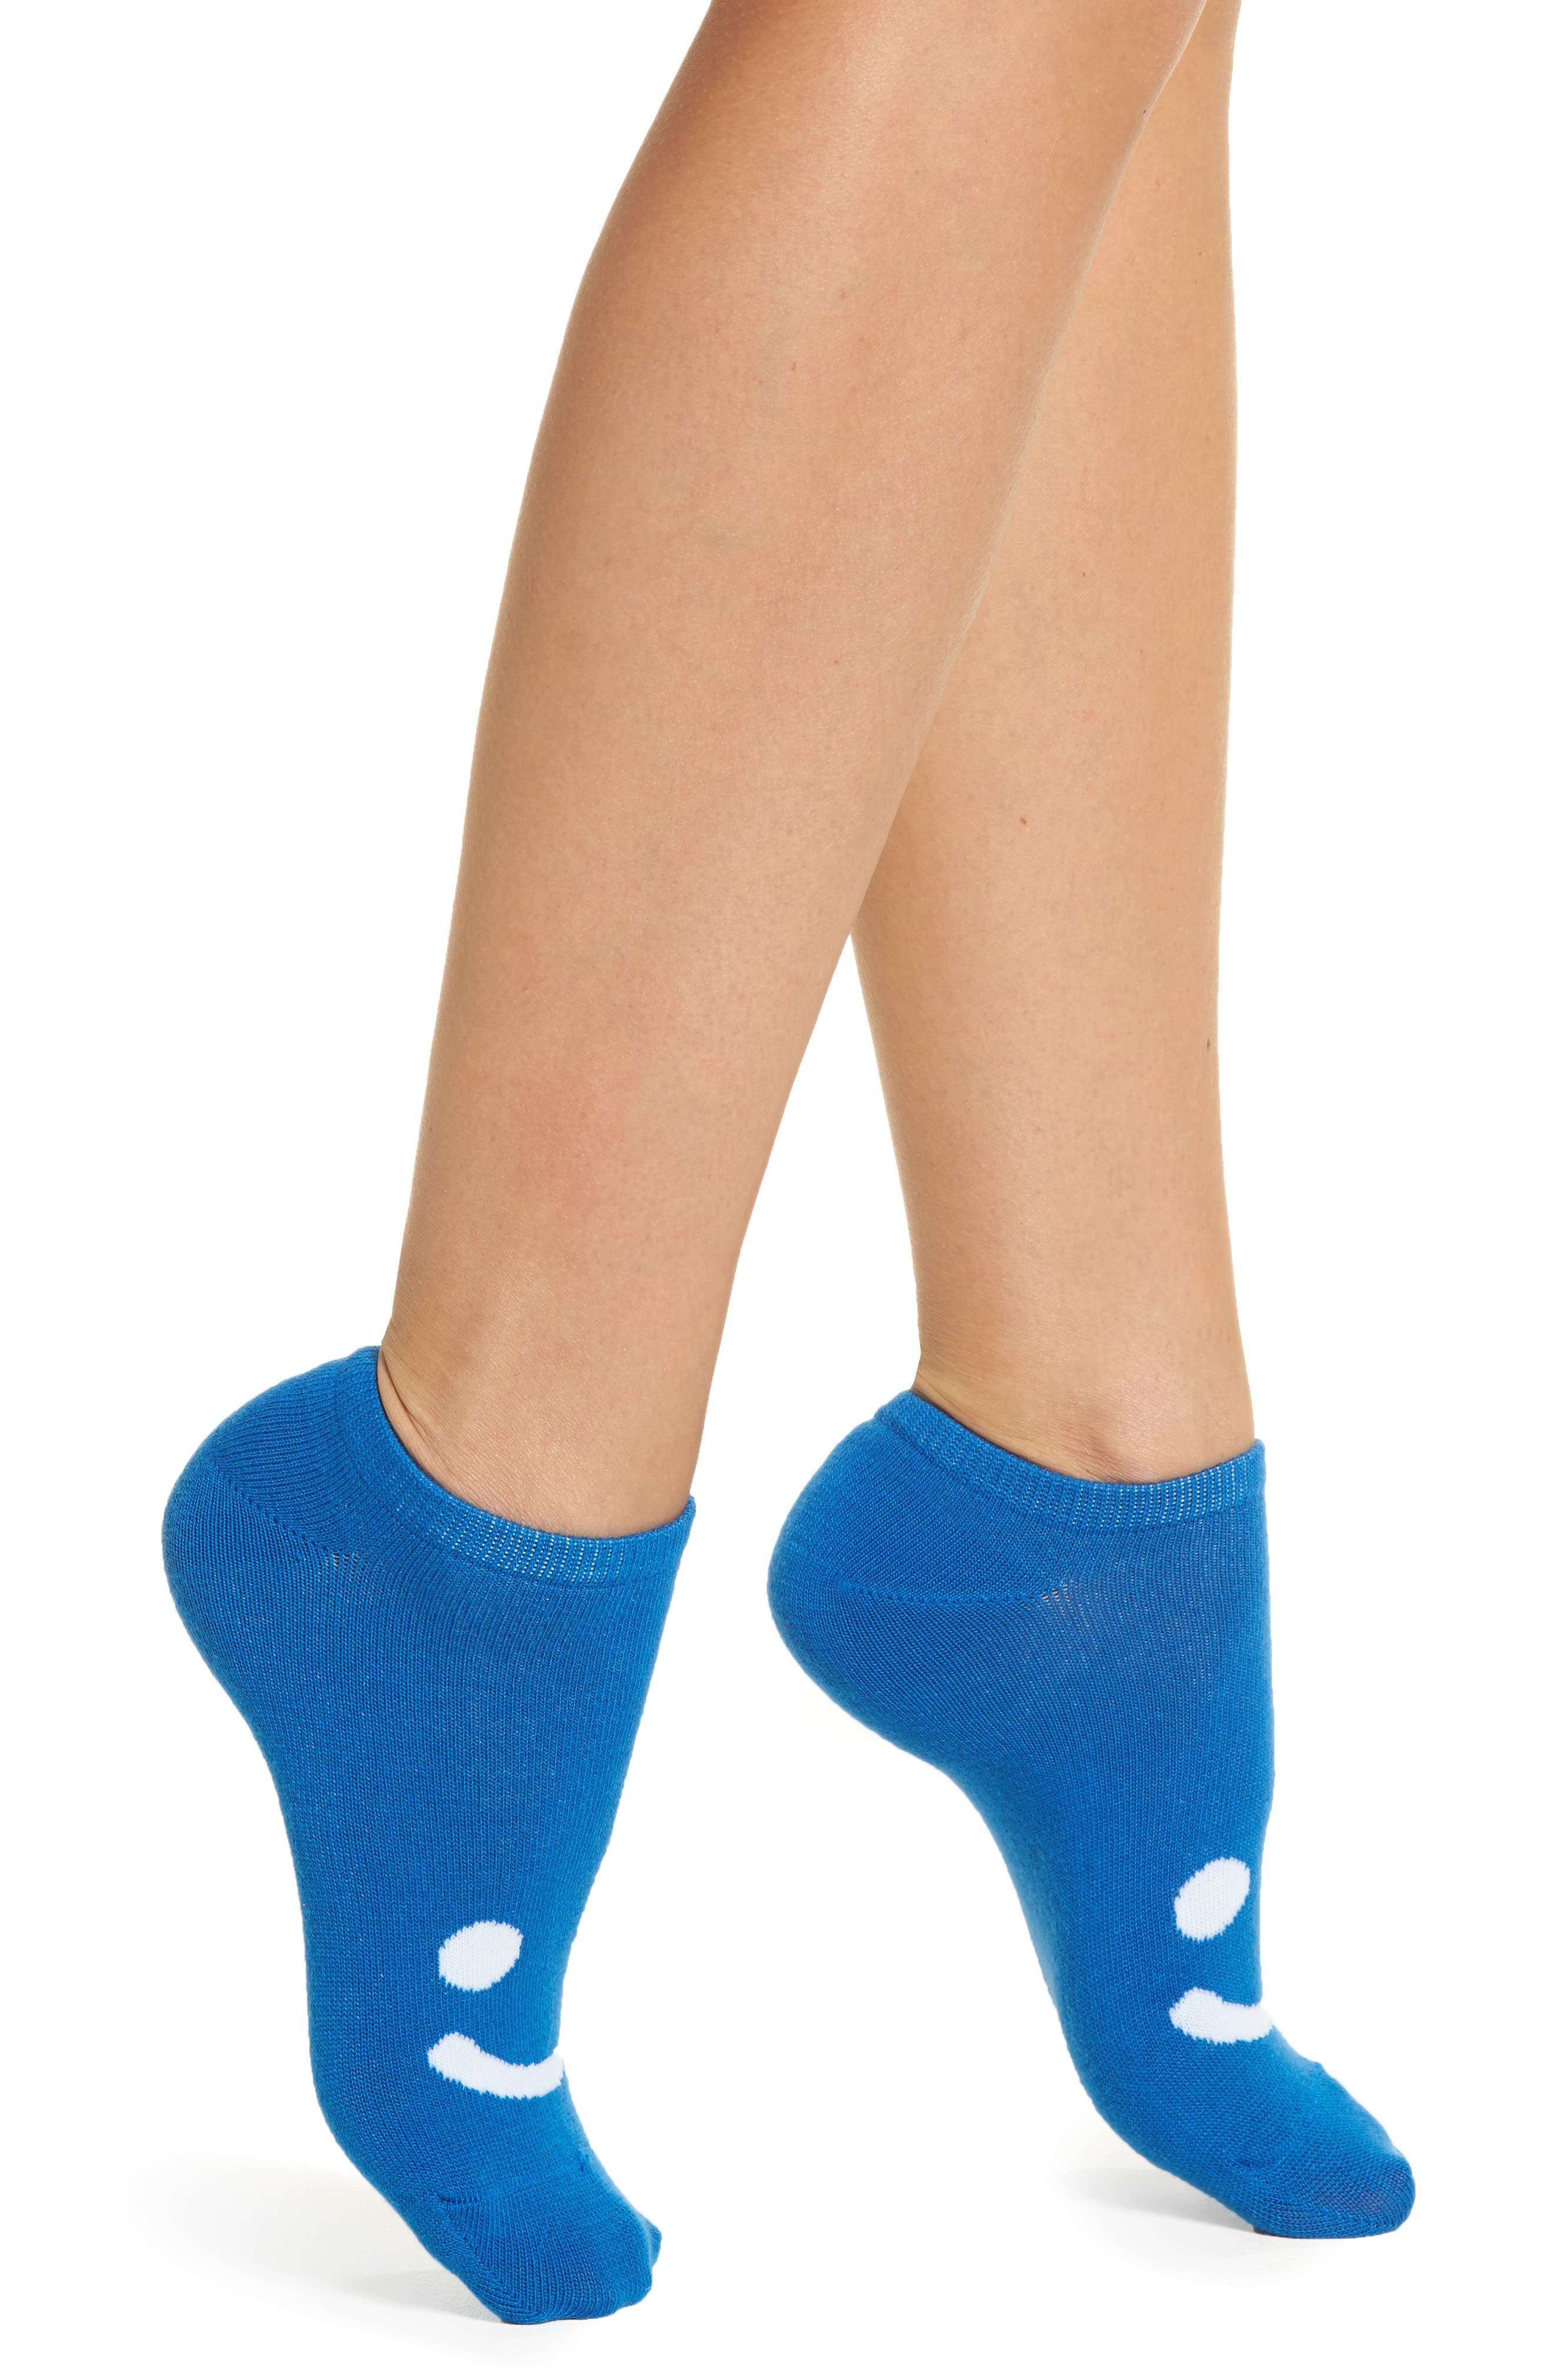 6-Pack All Smiles No-Show Socks,                         Main,                         color,